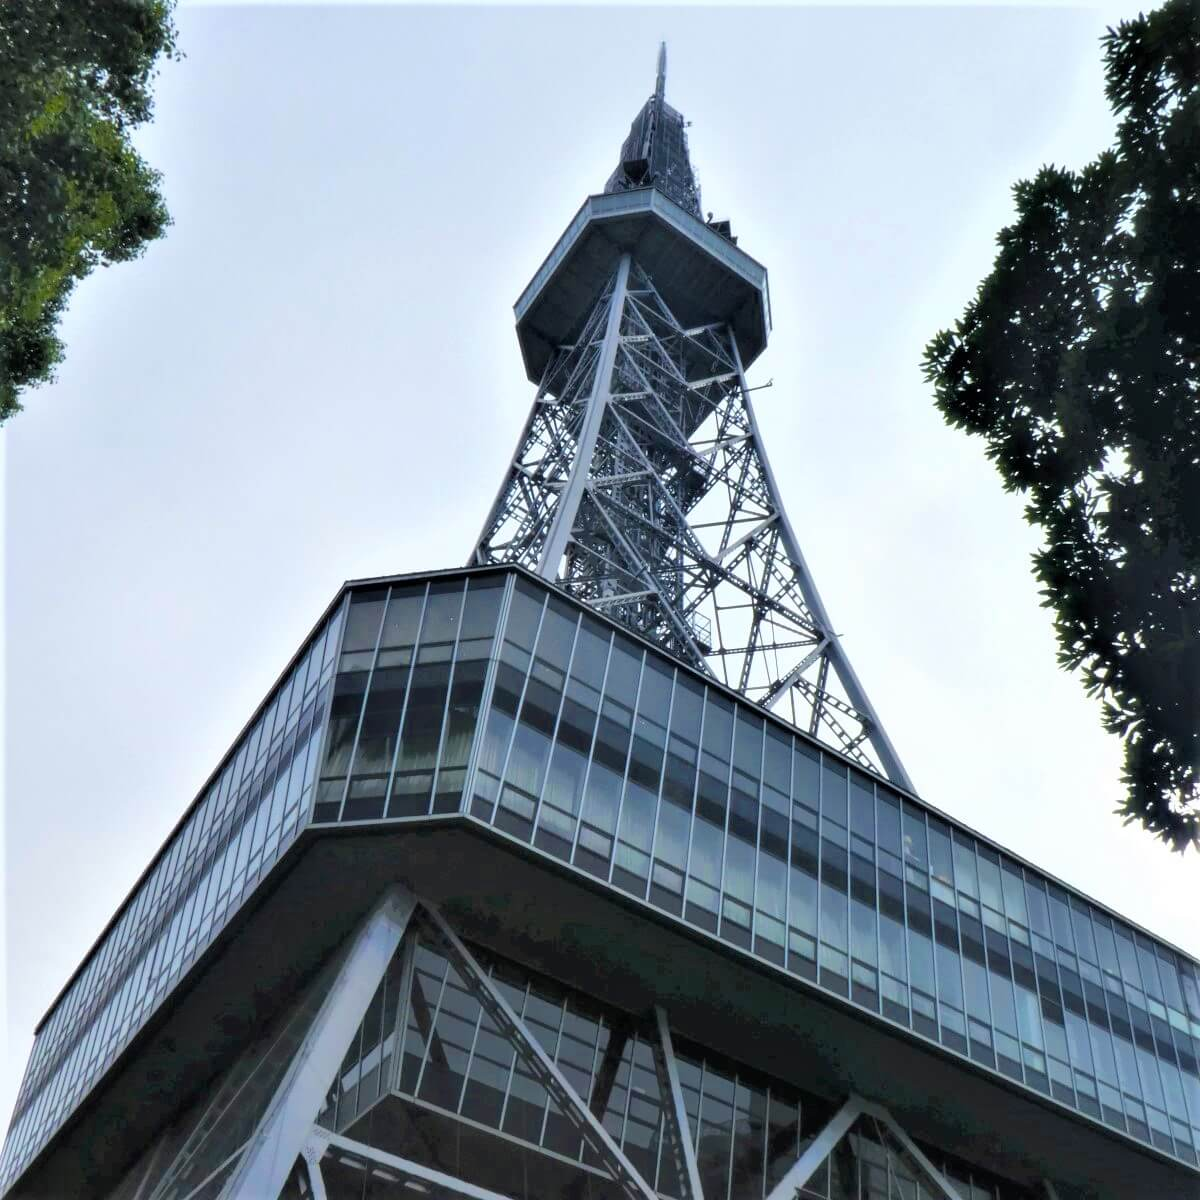 The Nagoya Television Tower in Japan